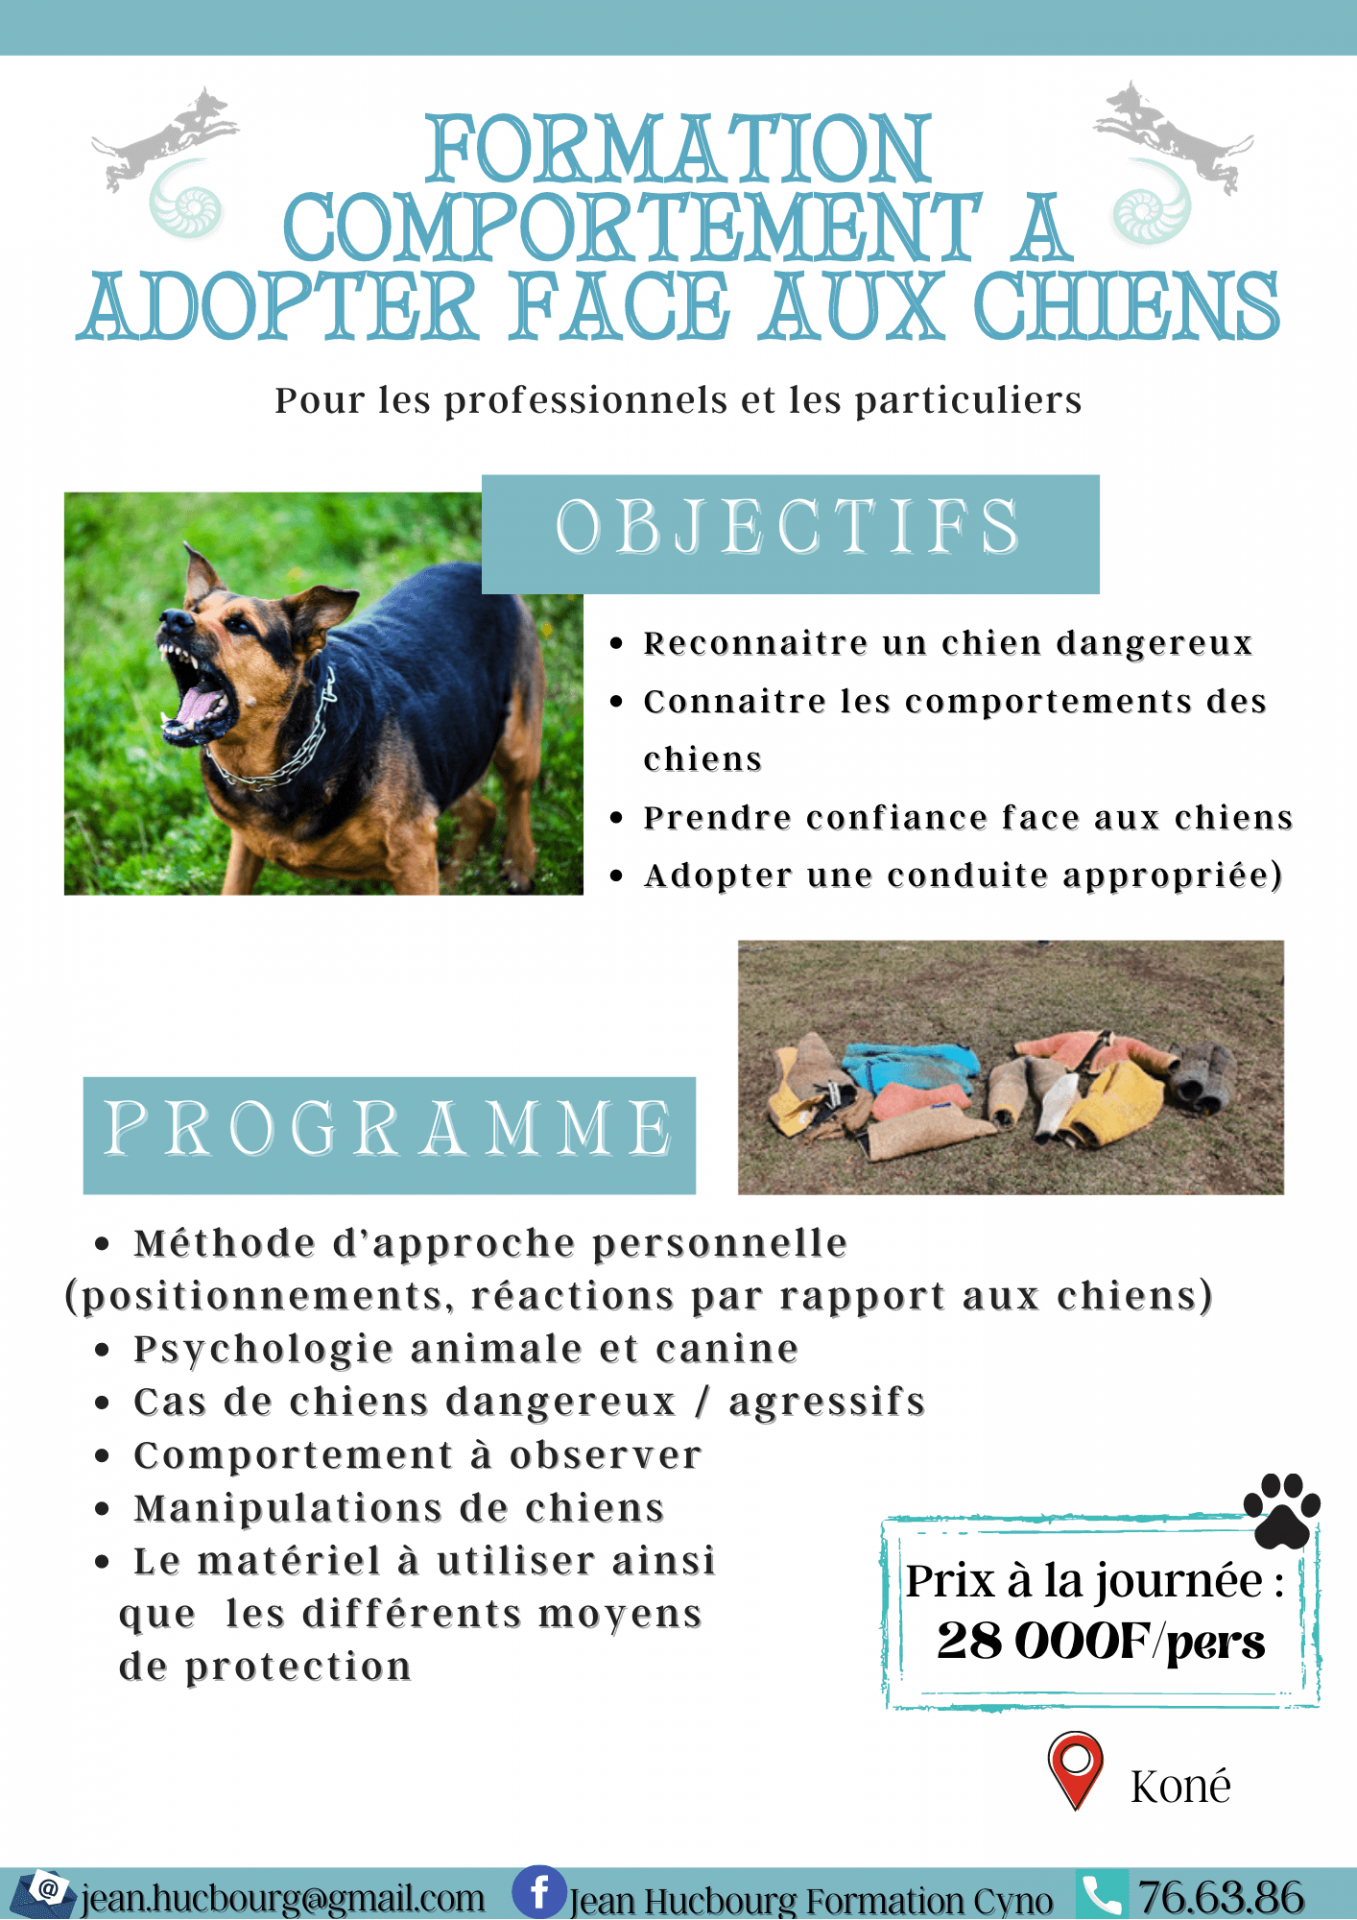 Formation comportement a adopter face aux chiens